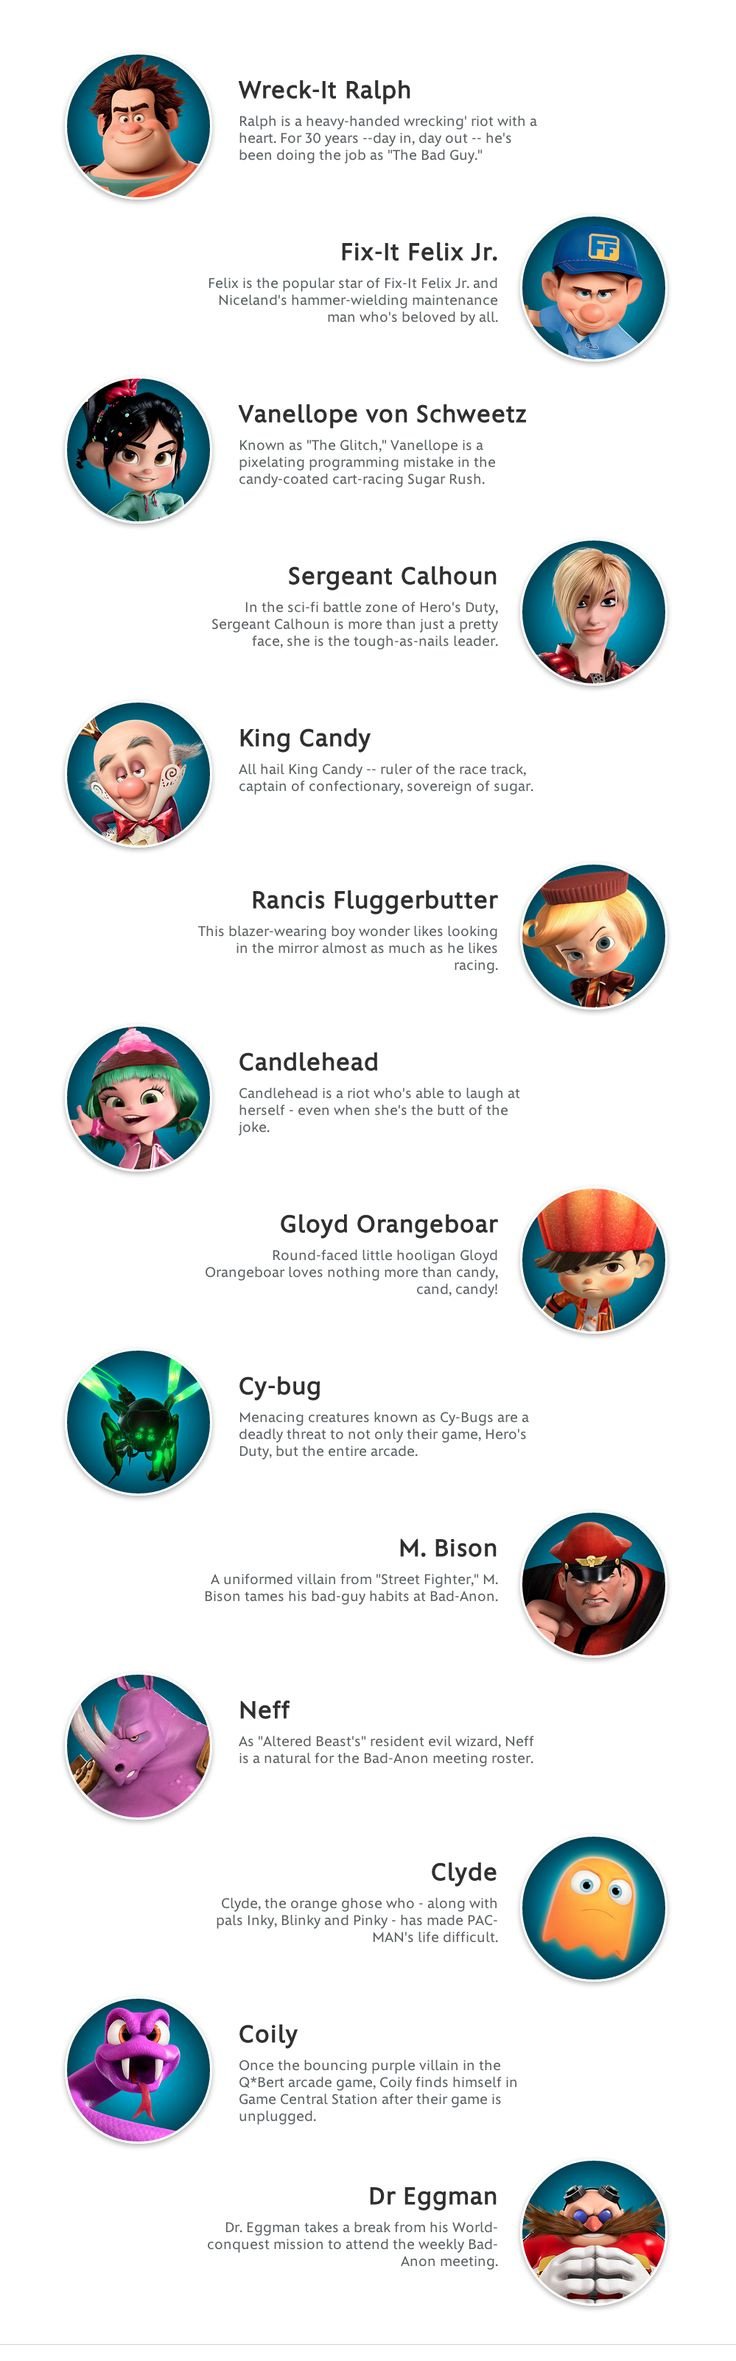 Wreck-It-Ralph, descriptions by disney.com, © Disney, all rights reserved, for more information click to go to disney.com